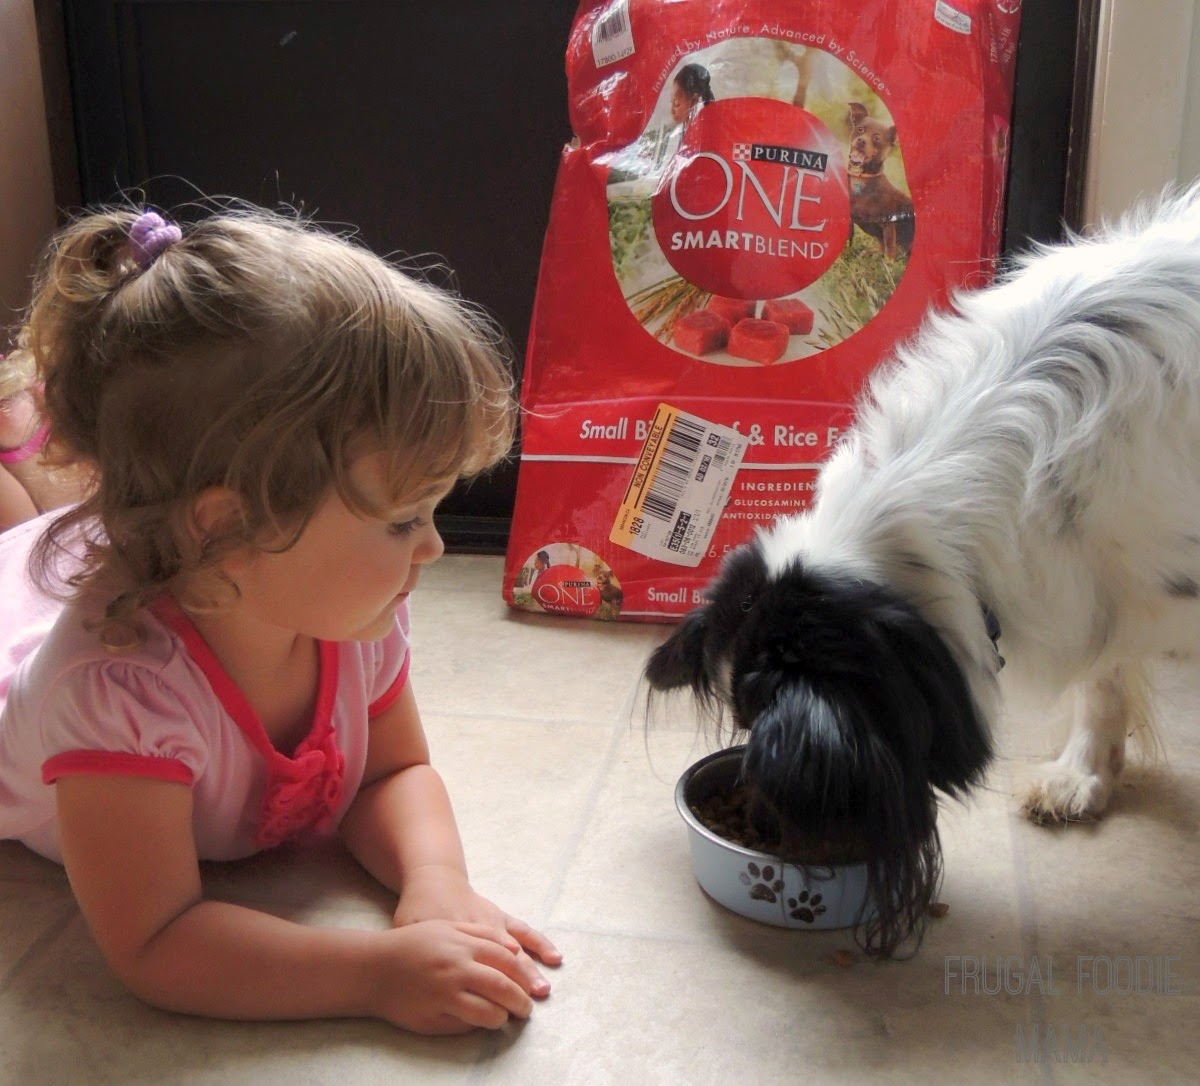 Let me introduce you to Charlie and the Purina One 28 Day Challenge via thefrugalfoodiemama.com #ONEDifference #PMedia #ad